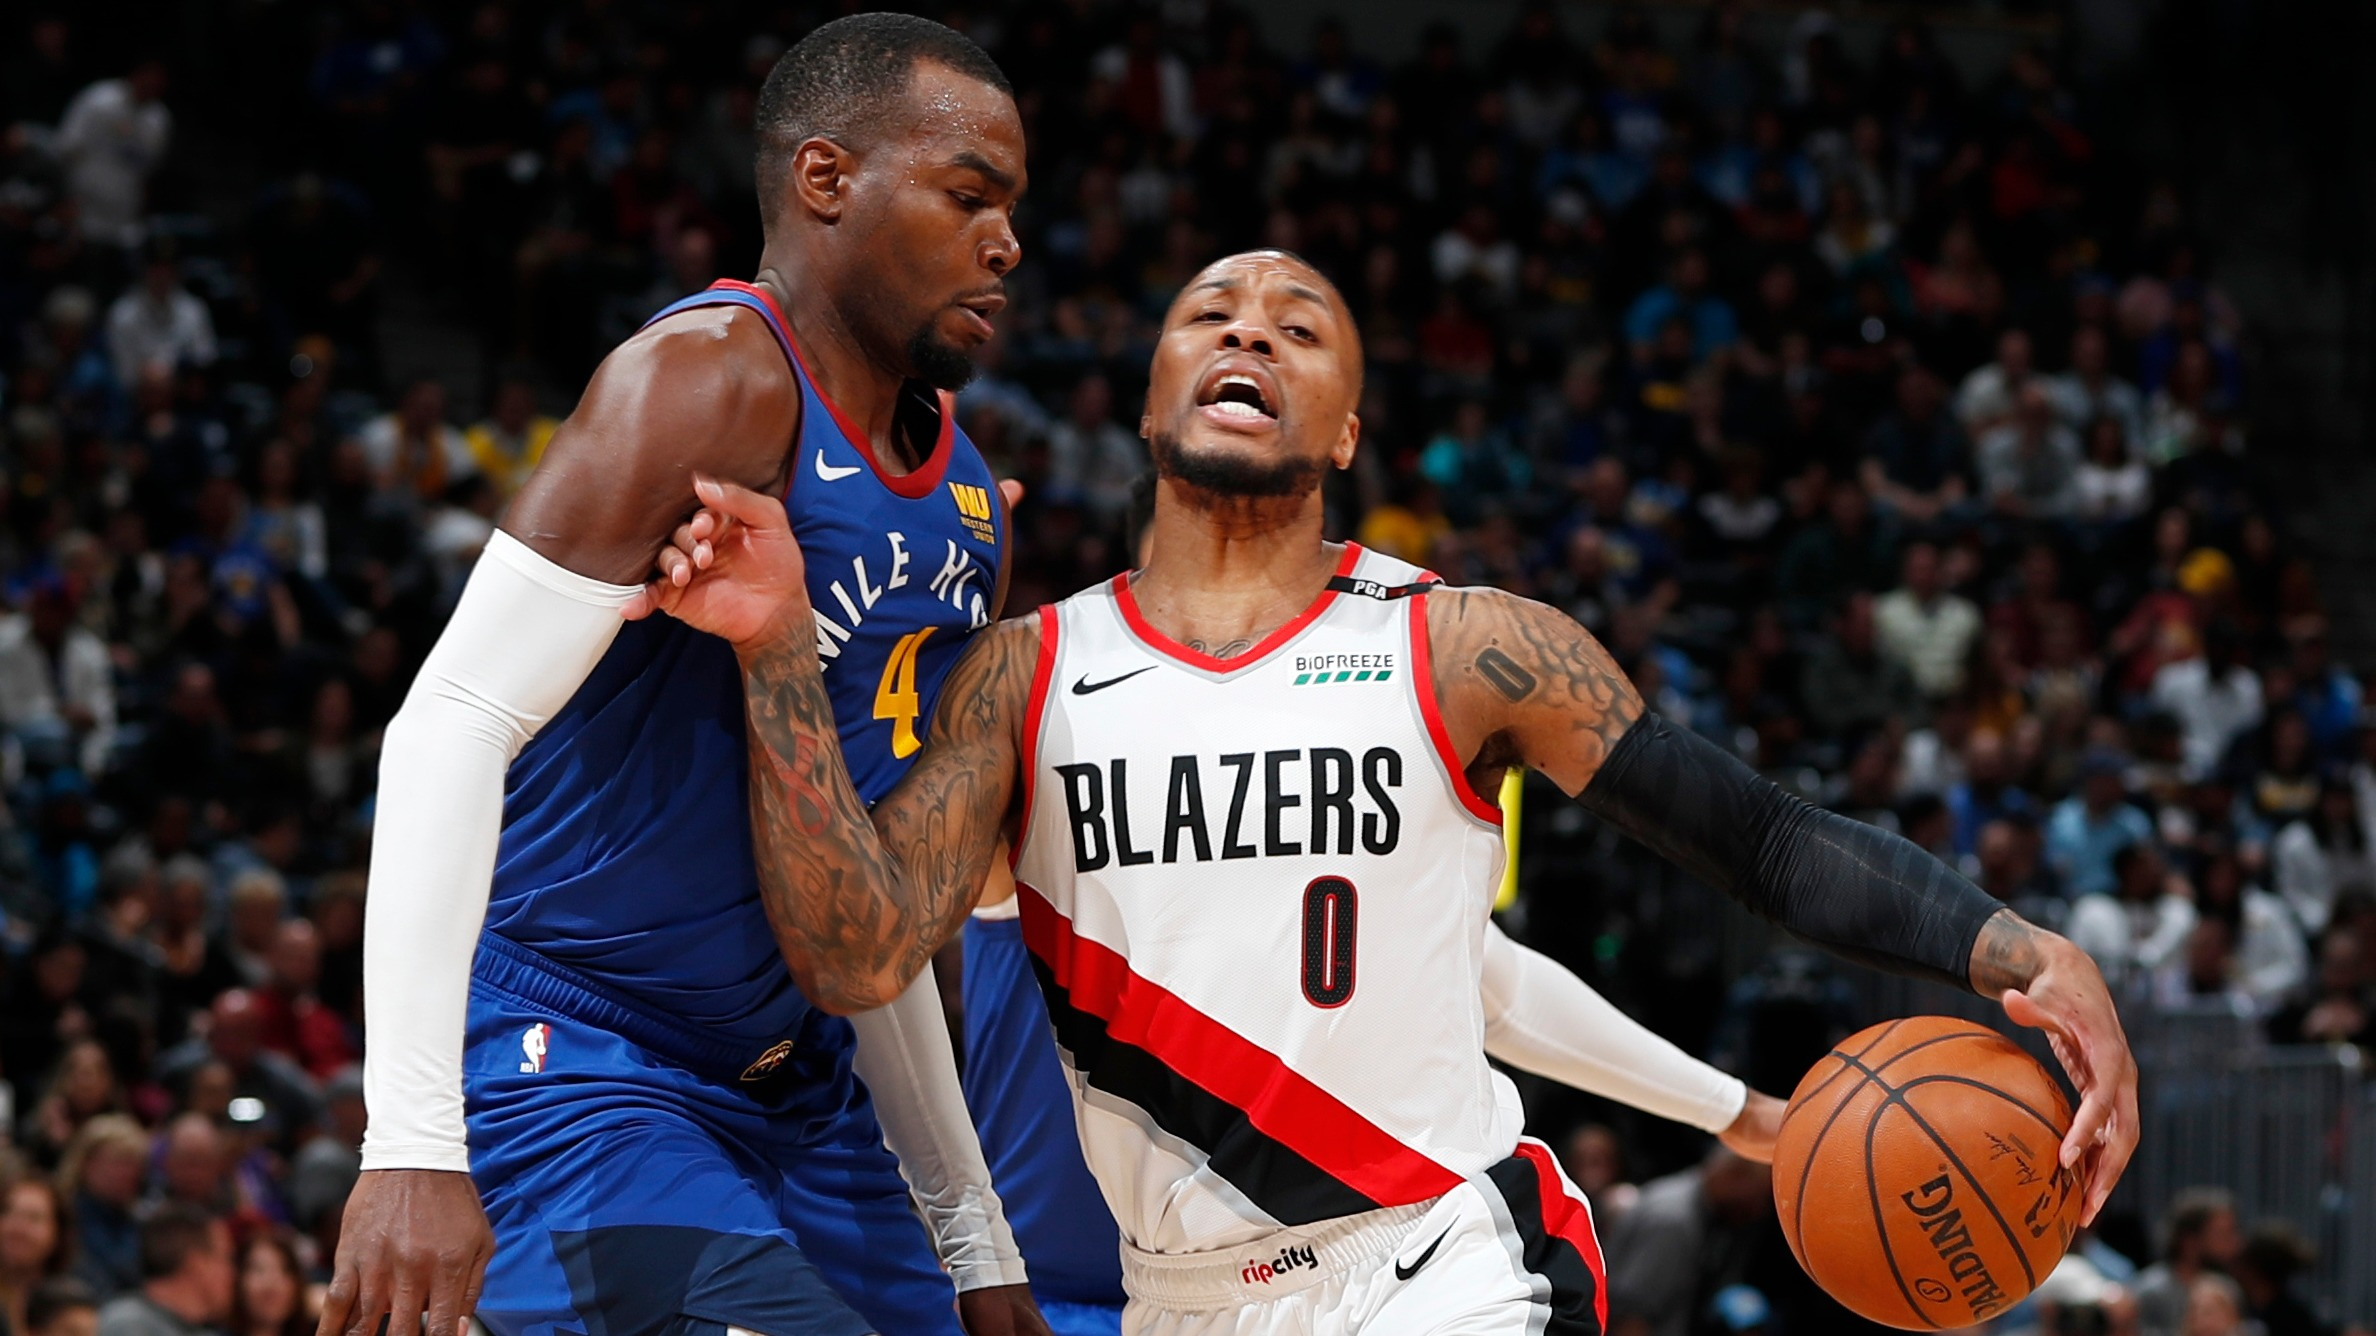 Trail Blazers at Nuggets Game 1 point spread, betting